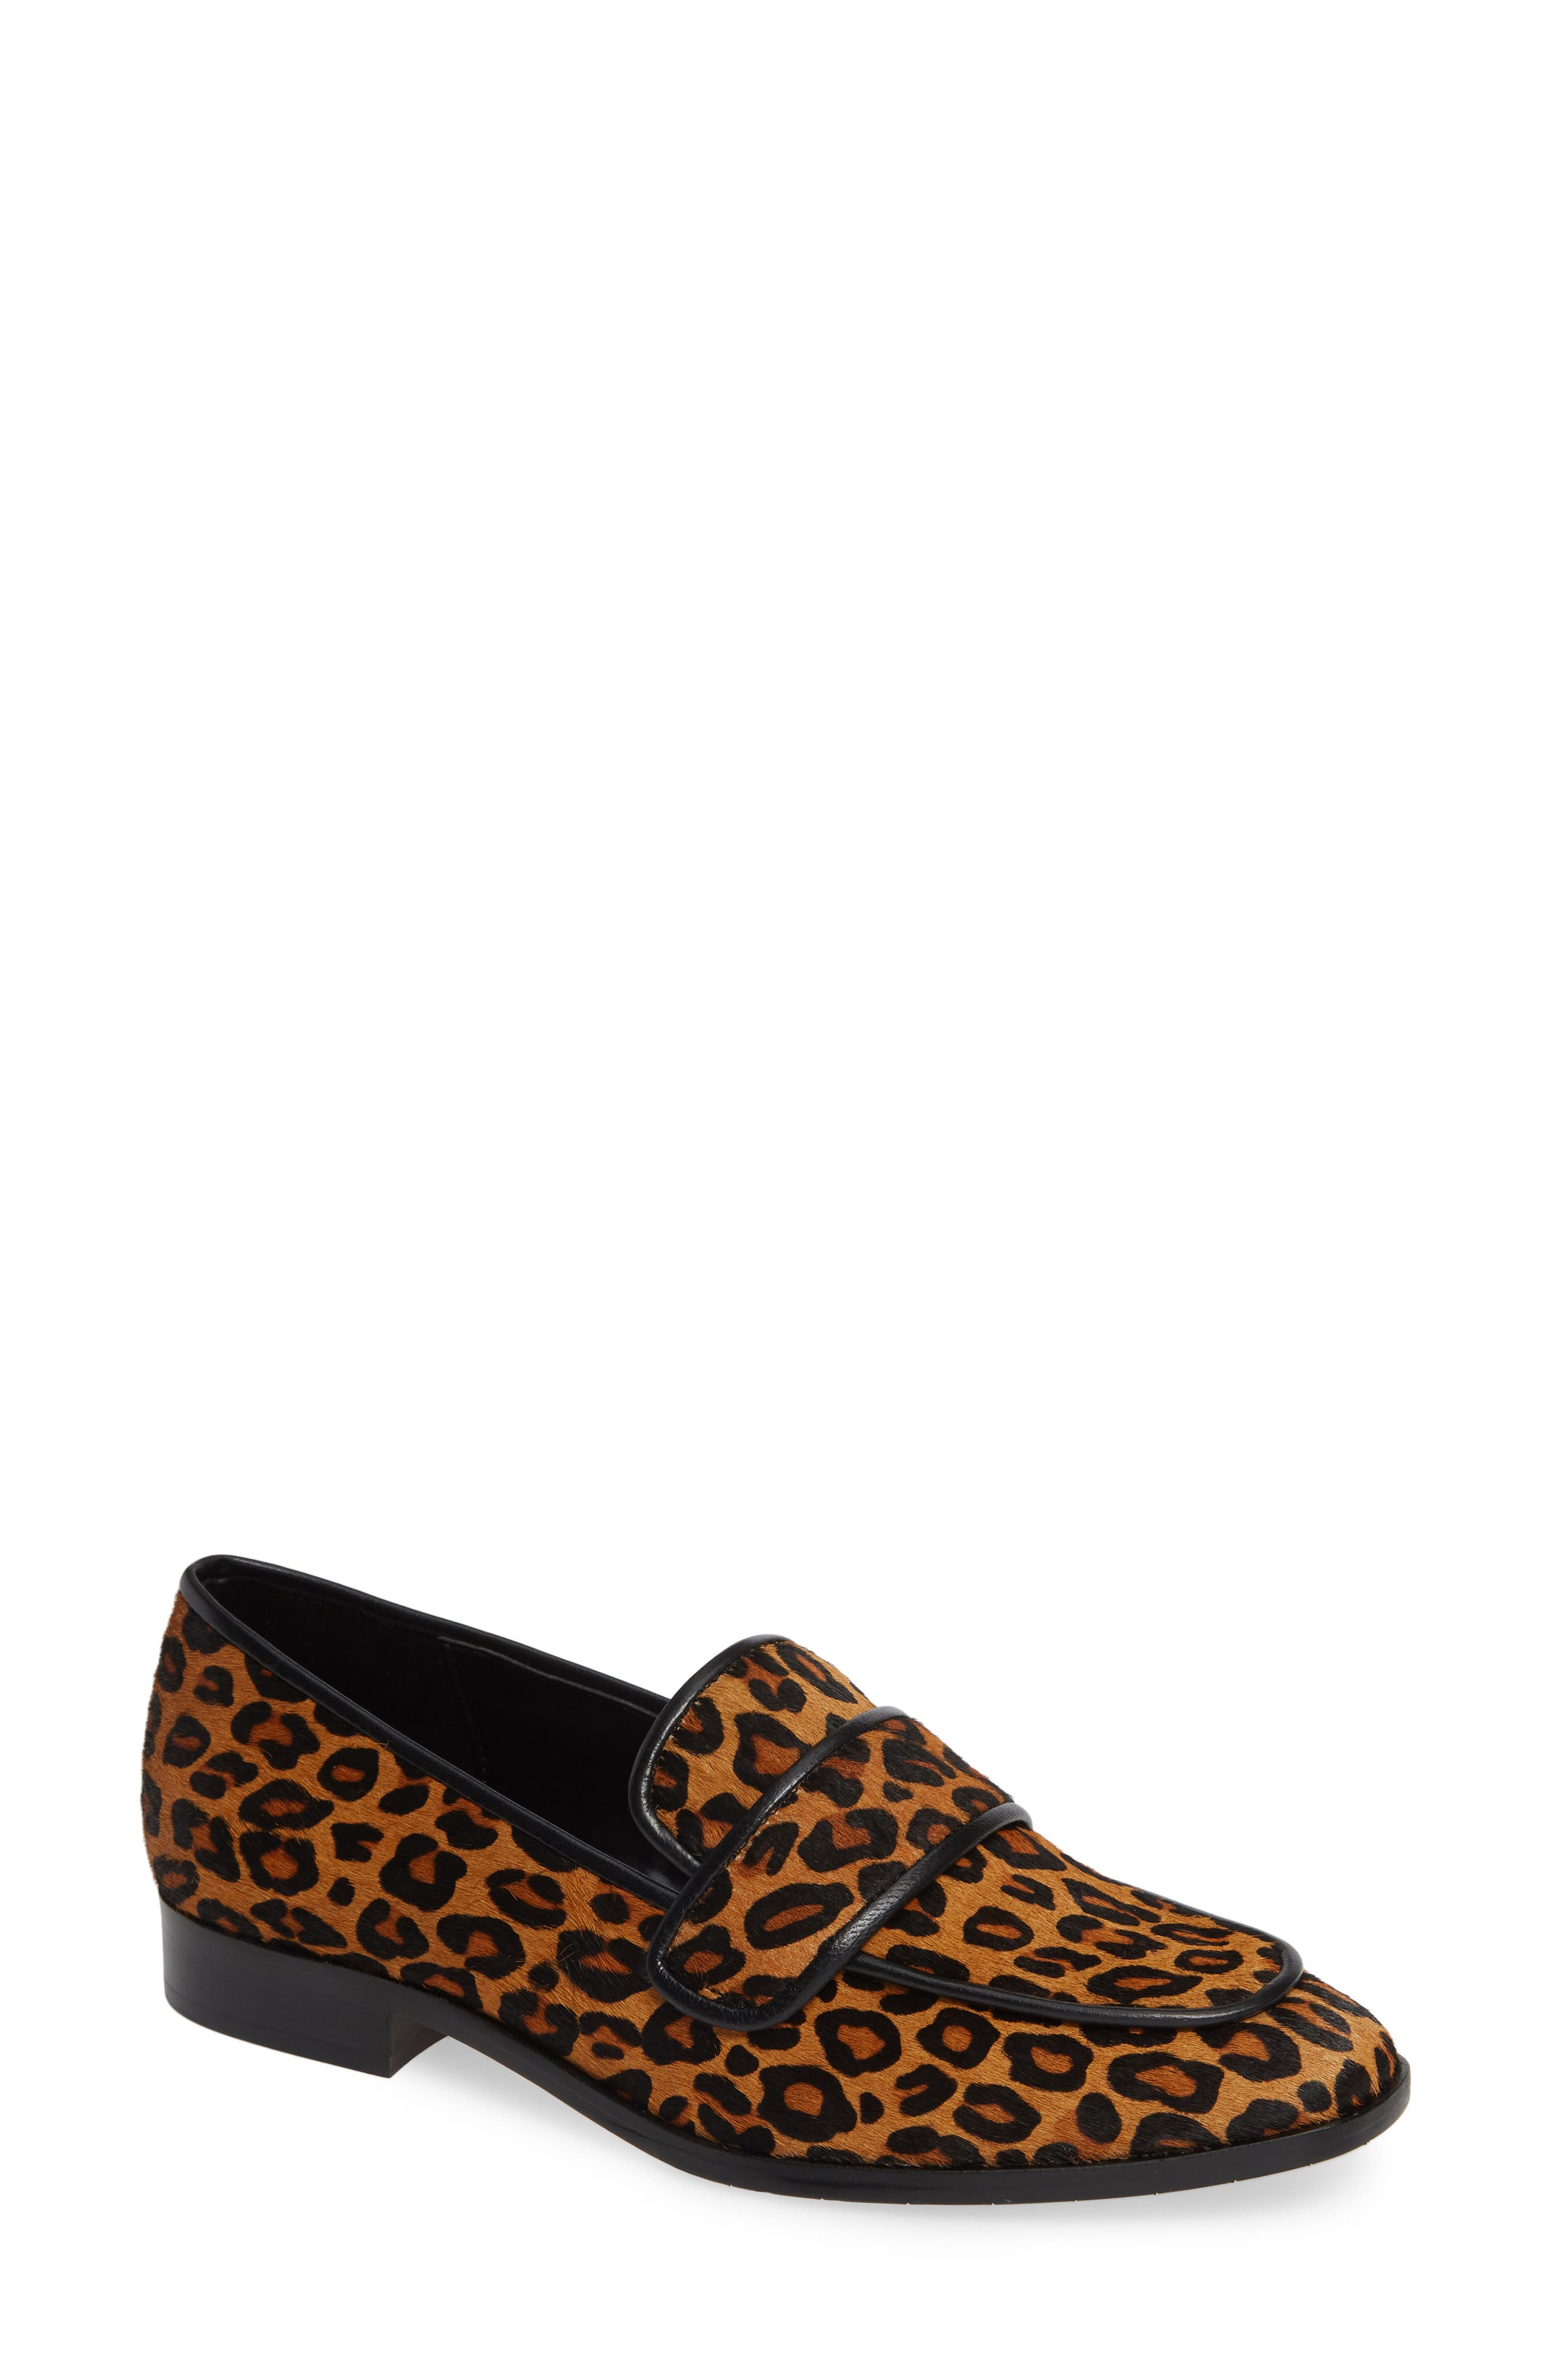 Loretta Flat Fur Loafers in Leopard Calf Hair